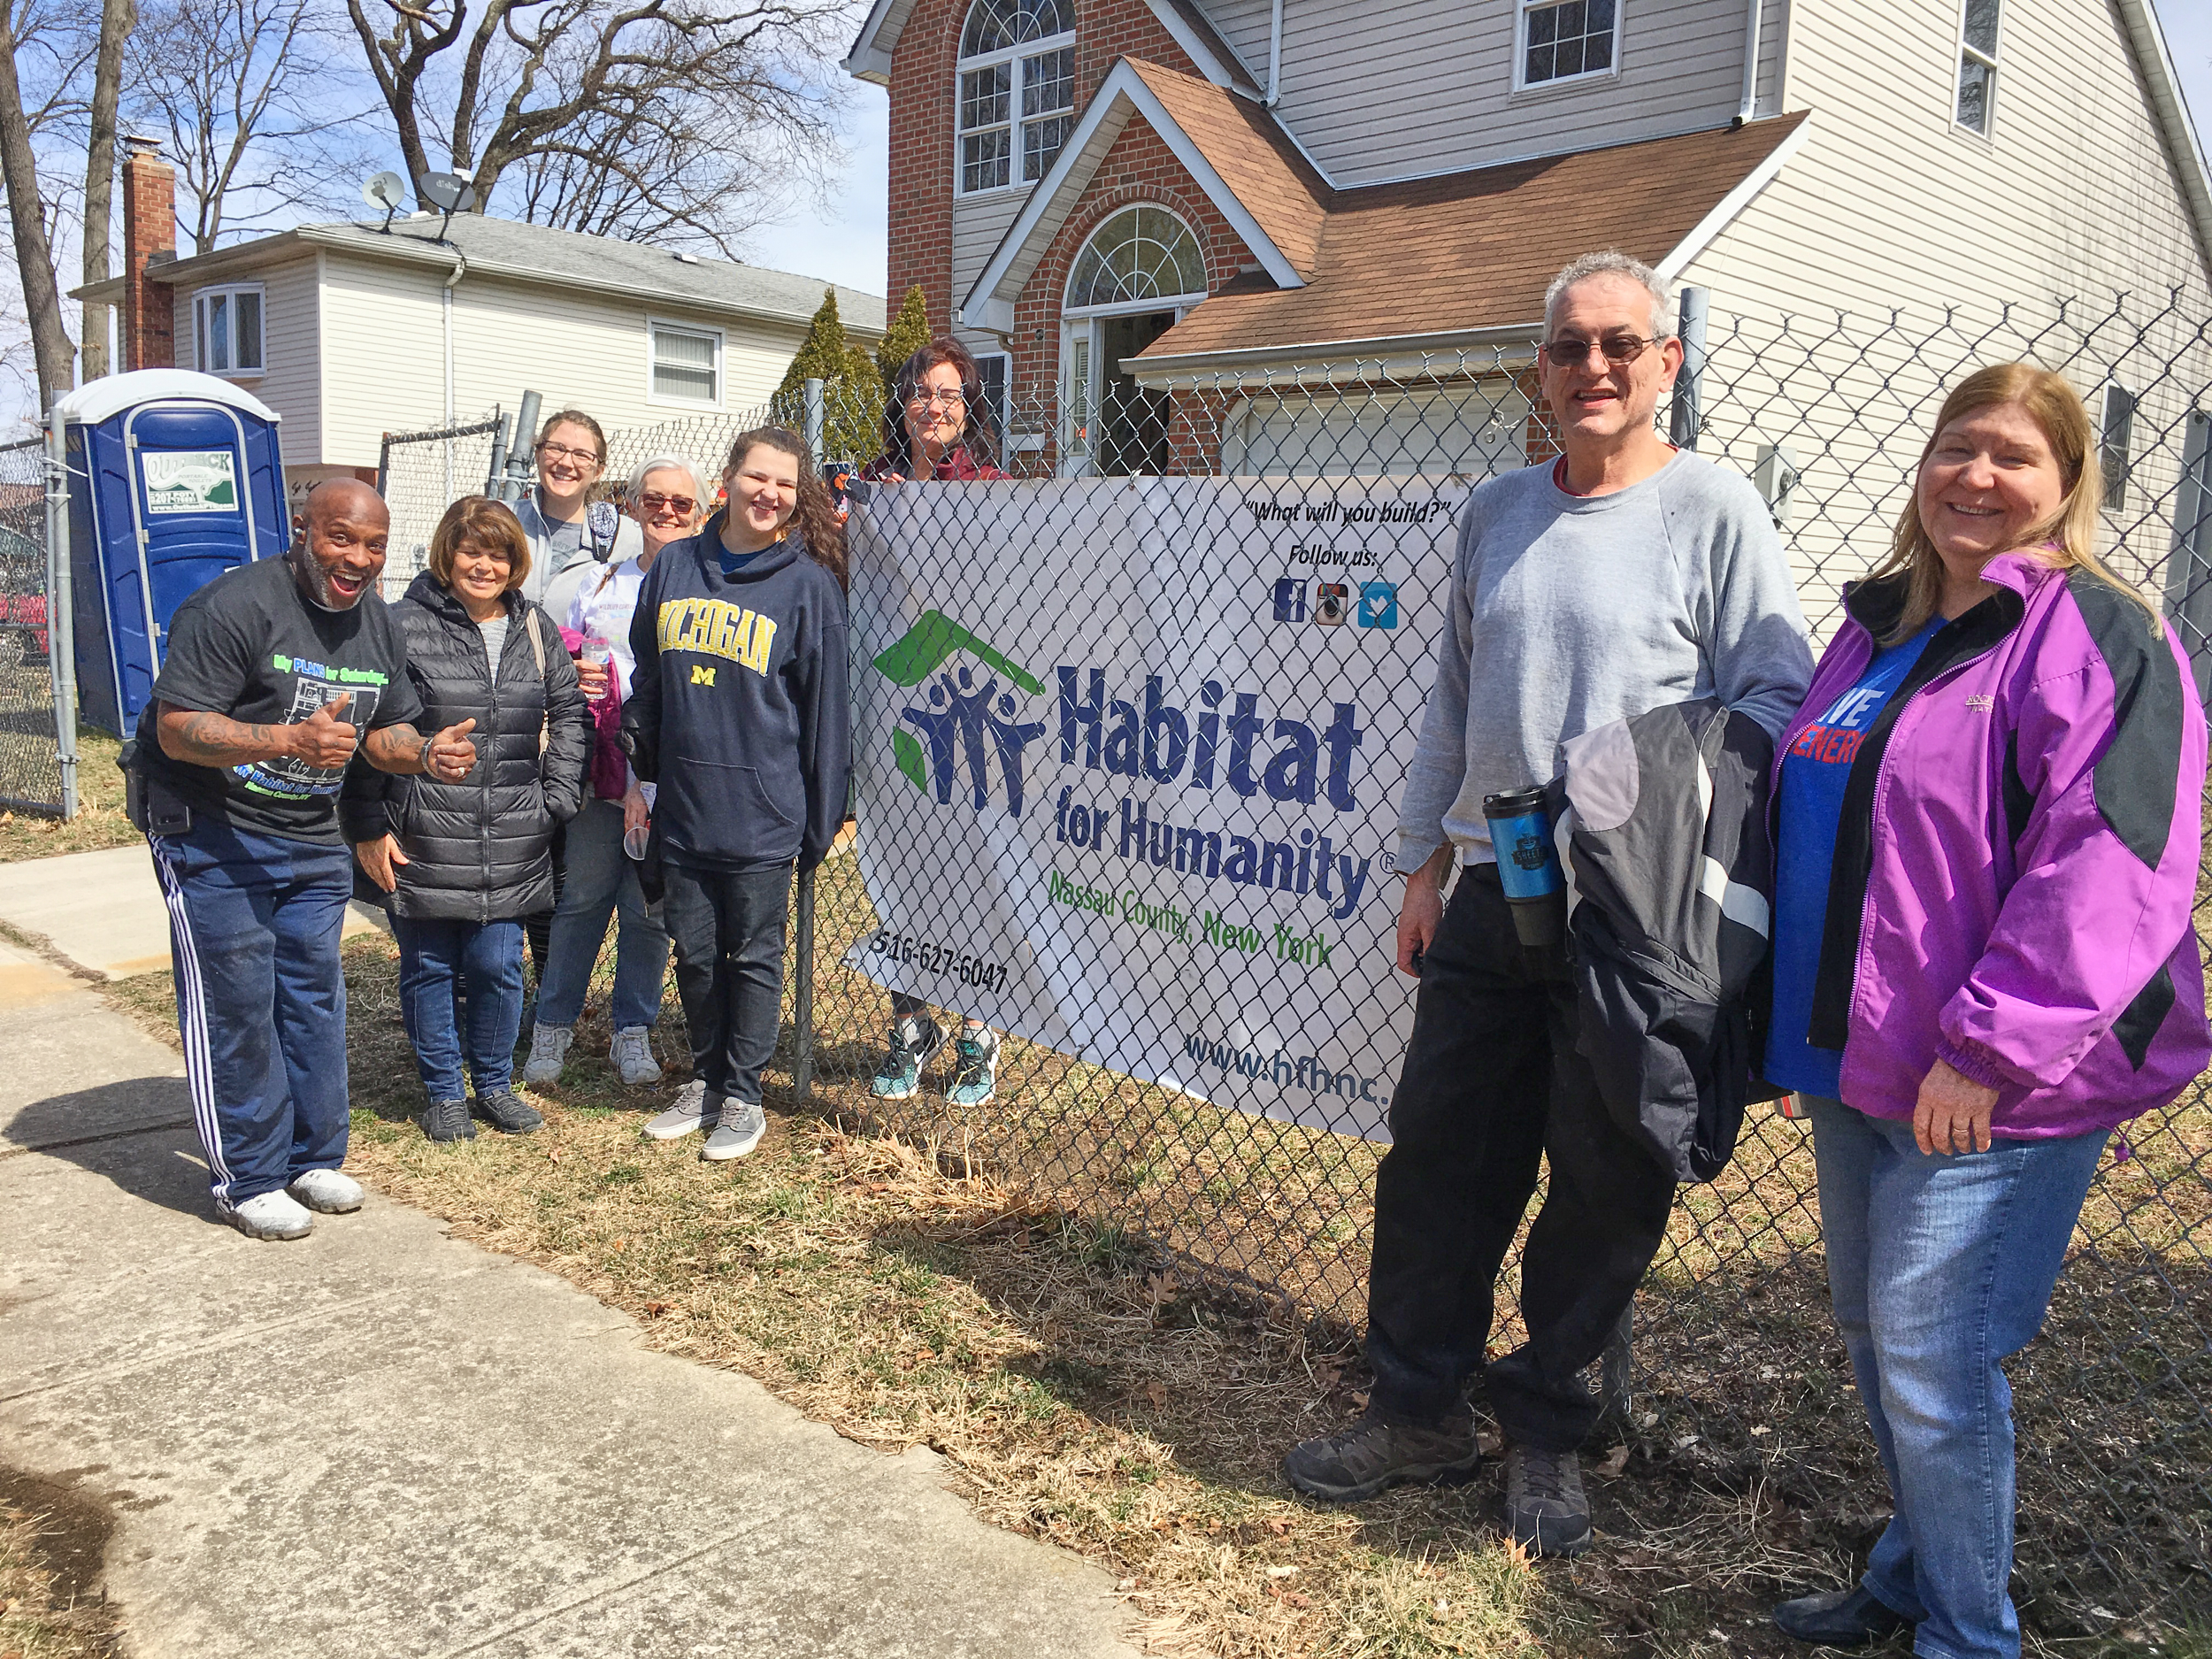 Habitat for Humanity Photos - Eight CLC volunteers helped with a house project in Roosevelt in Nassau County on Saturday, March 23rd. Thank you to these generous church members who gave their time and effort to help a family own their own home. We know how to insulate a house now! Check out the photos here.